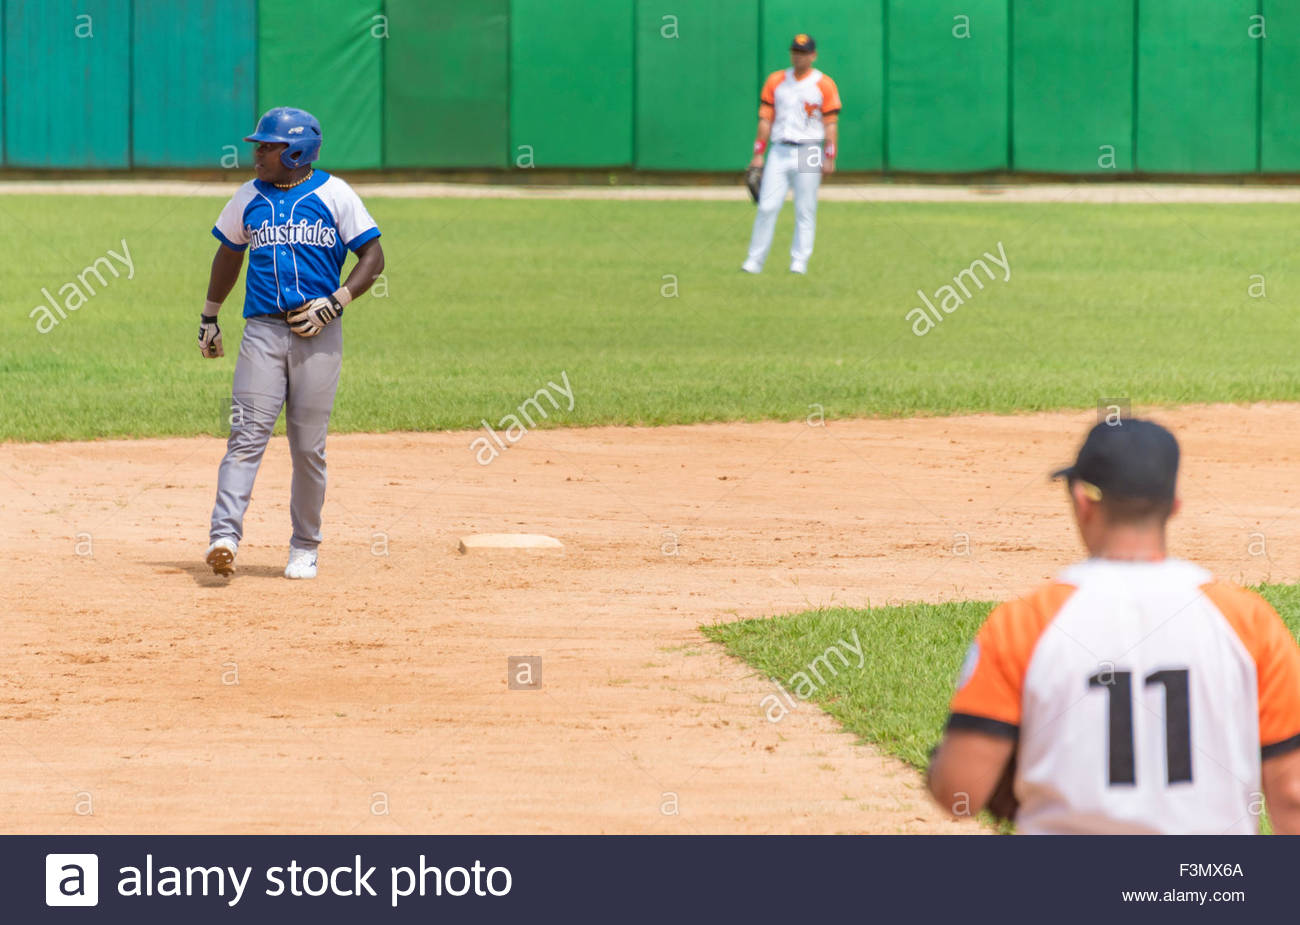 cuban baseball, team Industriales vs Villa Clara, Torriente pulls the first run with a double to the left field - Stock Image